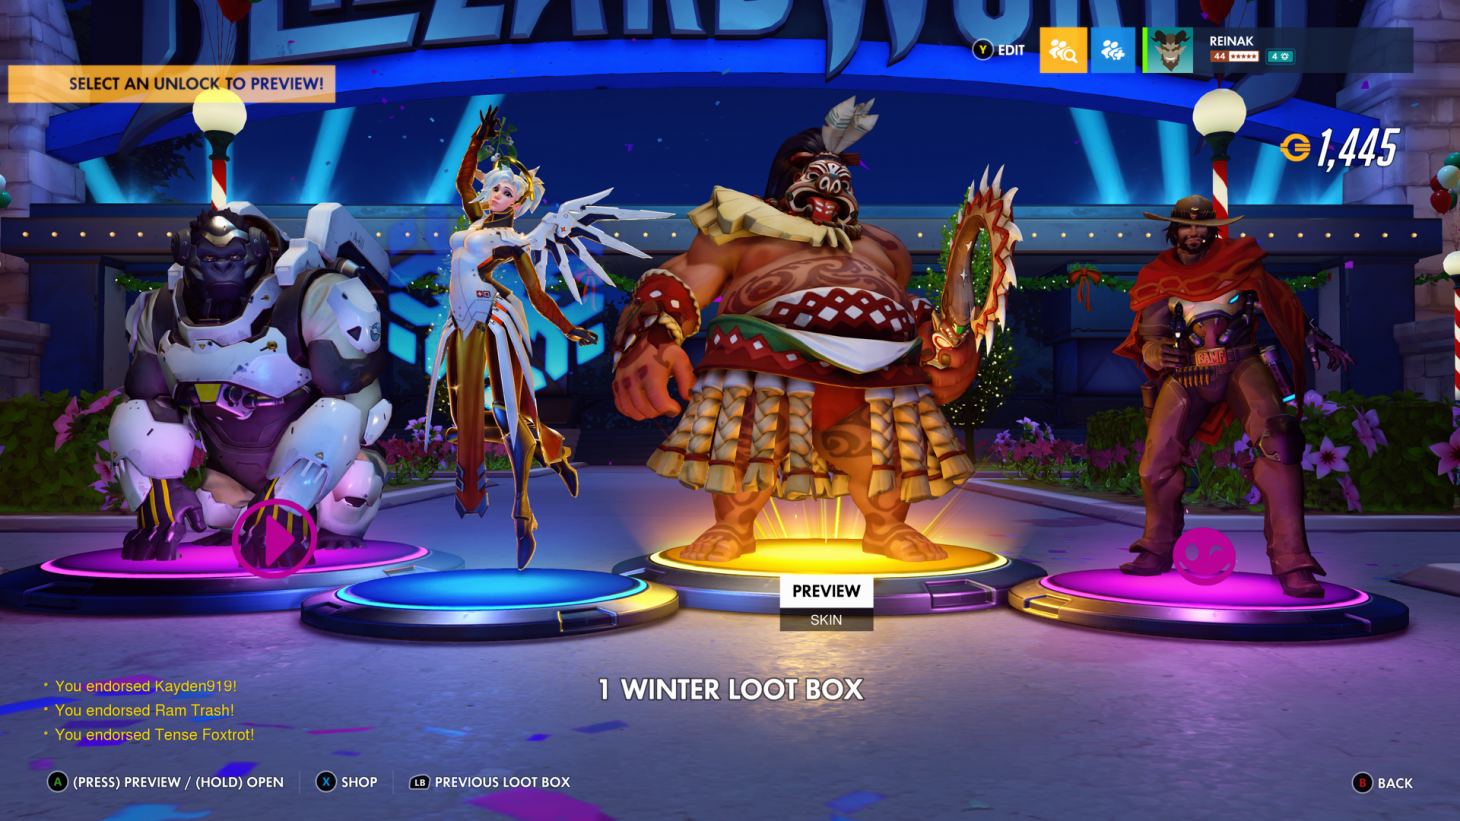 Overwatch 2020 Christmas Boxes Overwatch Gives All Players Five Free Winter Loot Boxes   Game